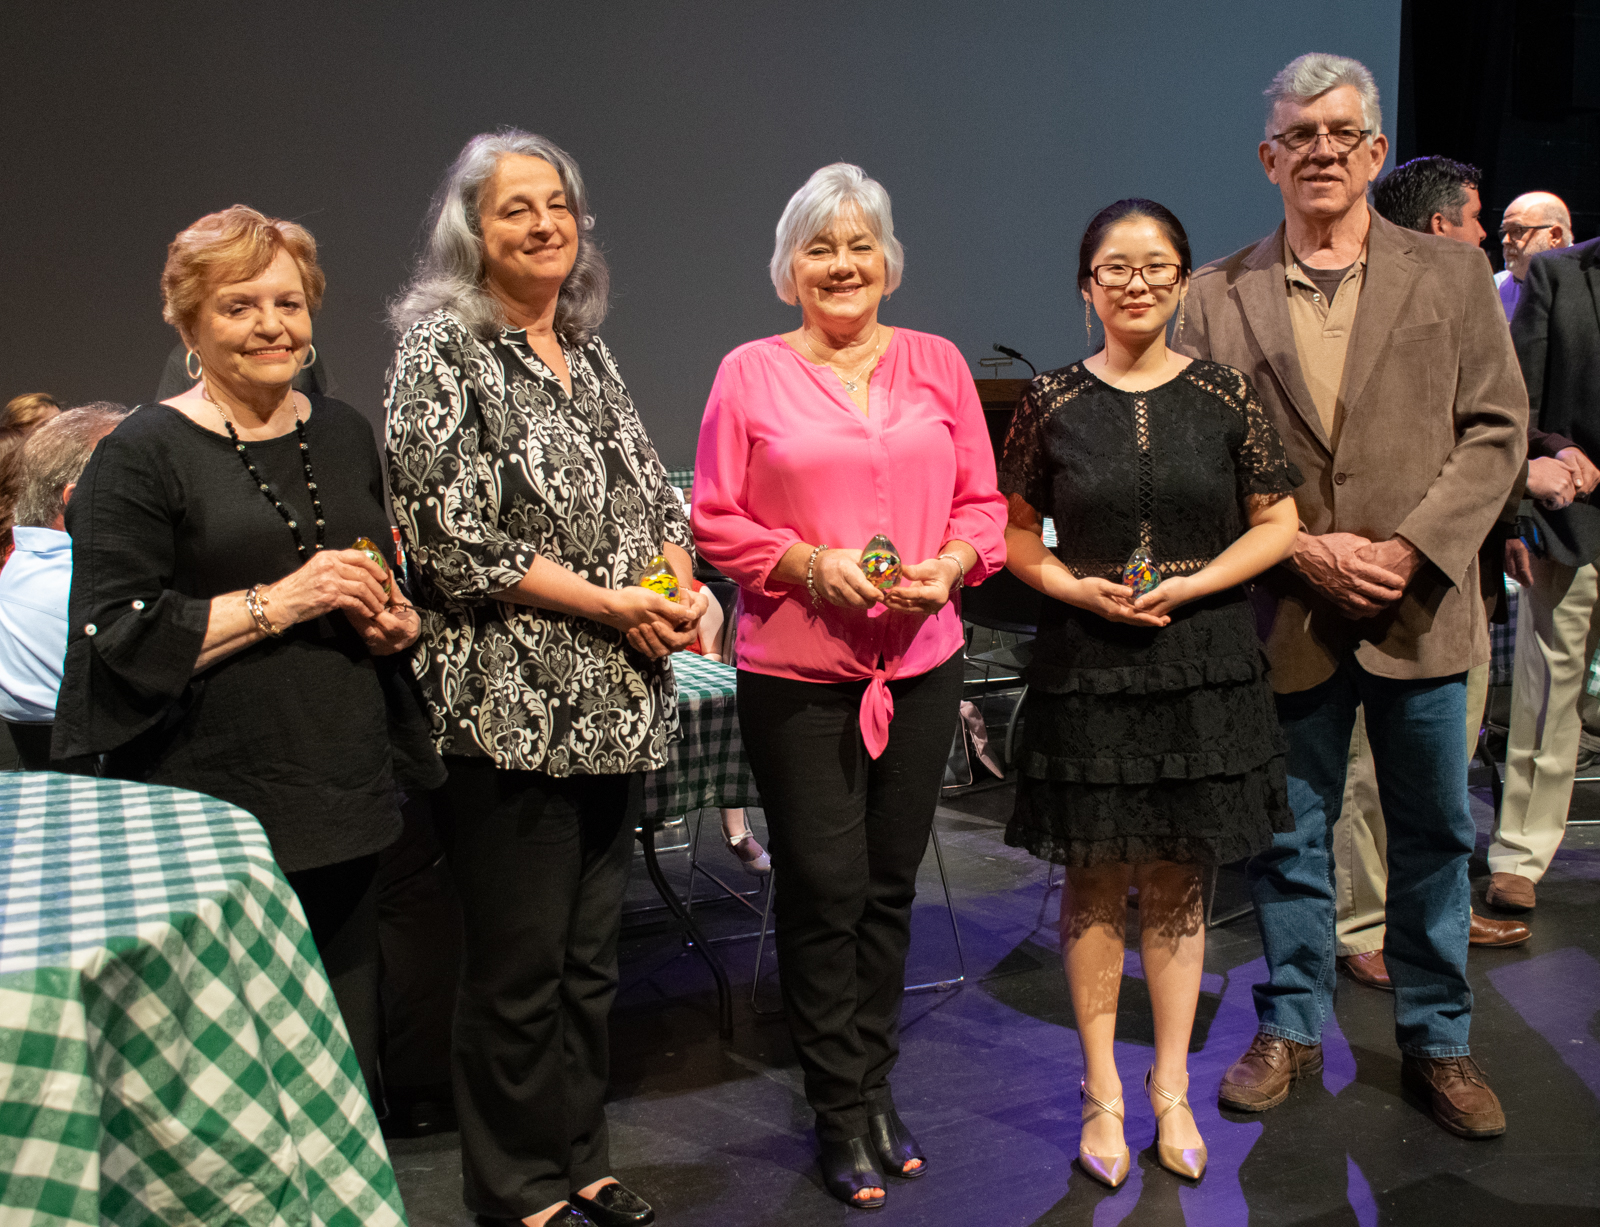 2019 Good Egg Awards recipients were Charlotte England (from left), Donna Oates, Pam Holcomb, Yunru (Rachel) Shinn and Bill Moss. The five were among those honored during the Arts & Science Center's Volunteer Night awards and reception on Thursday, April 11. The awards were crafted by glassmaker  James Hayes .